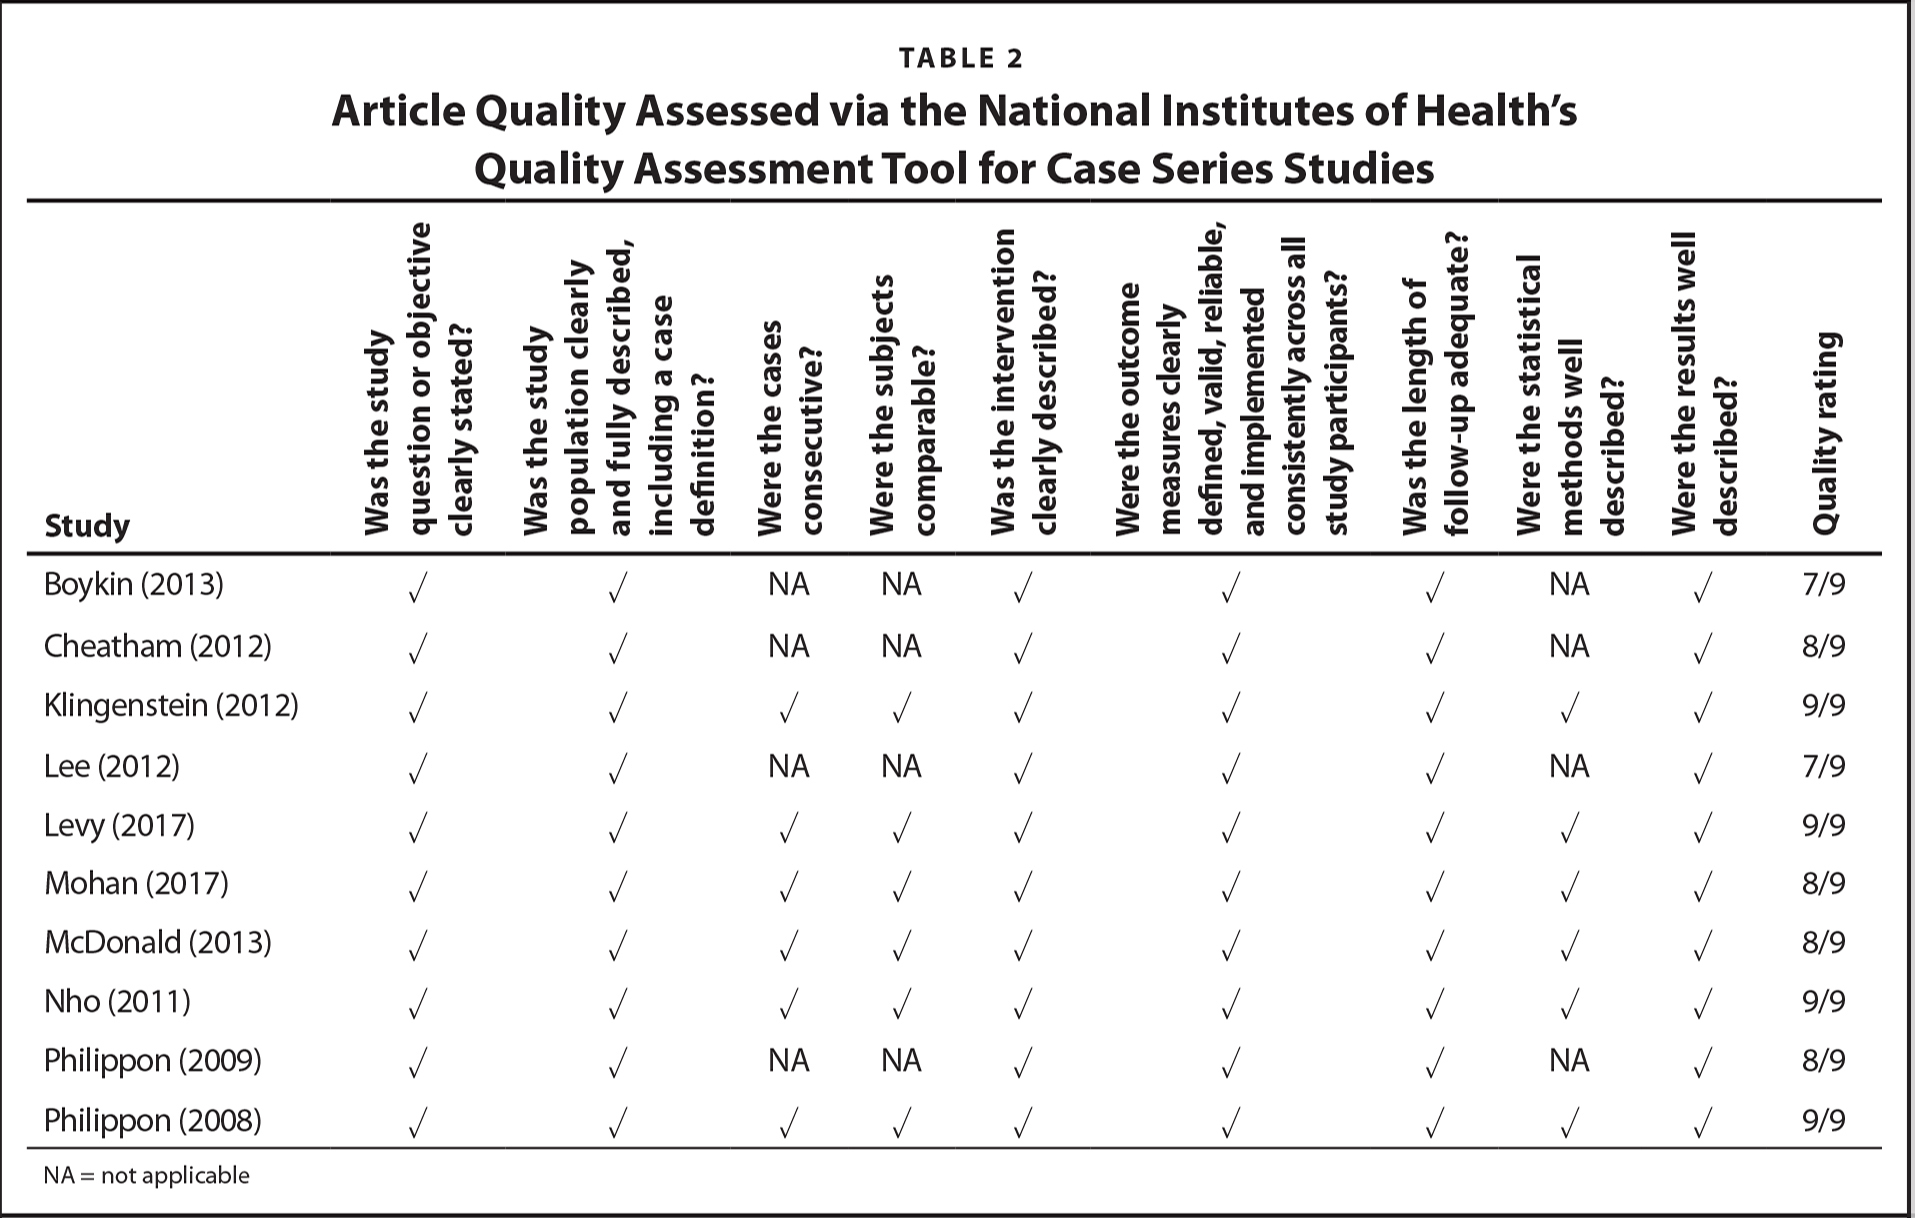 Article Quality Assessed via the National Institutes of Health's Quality Assessment Tool for Case Series Studies